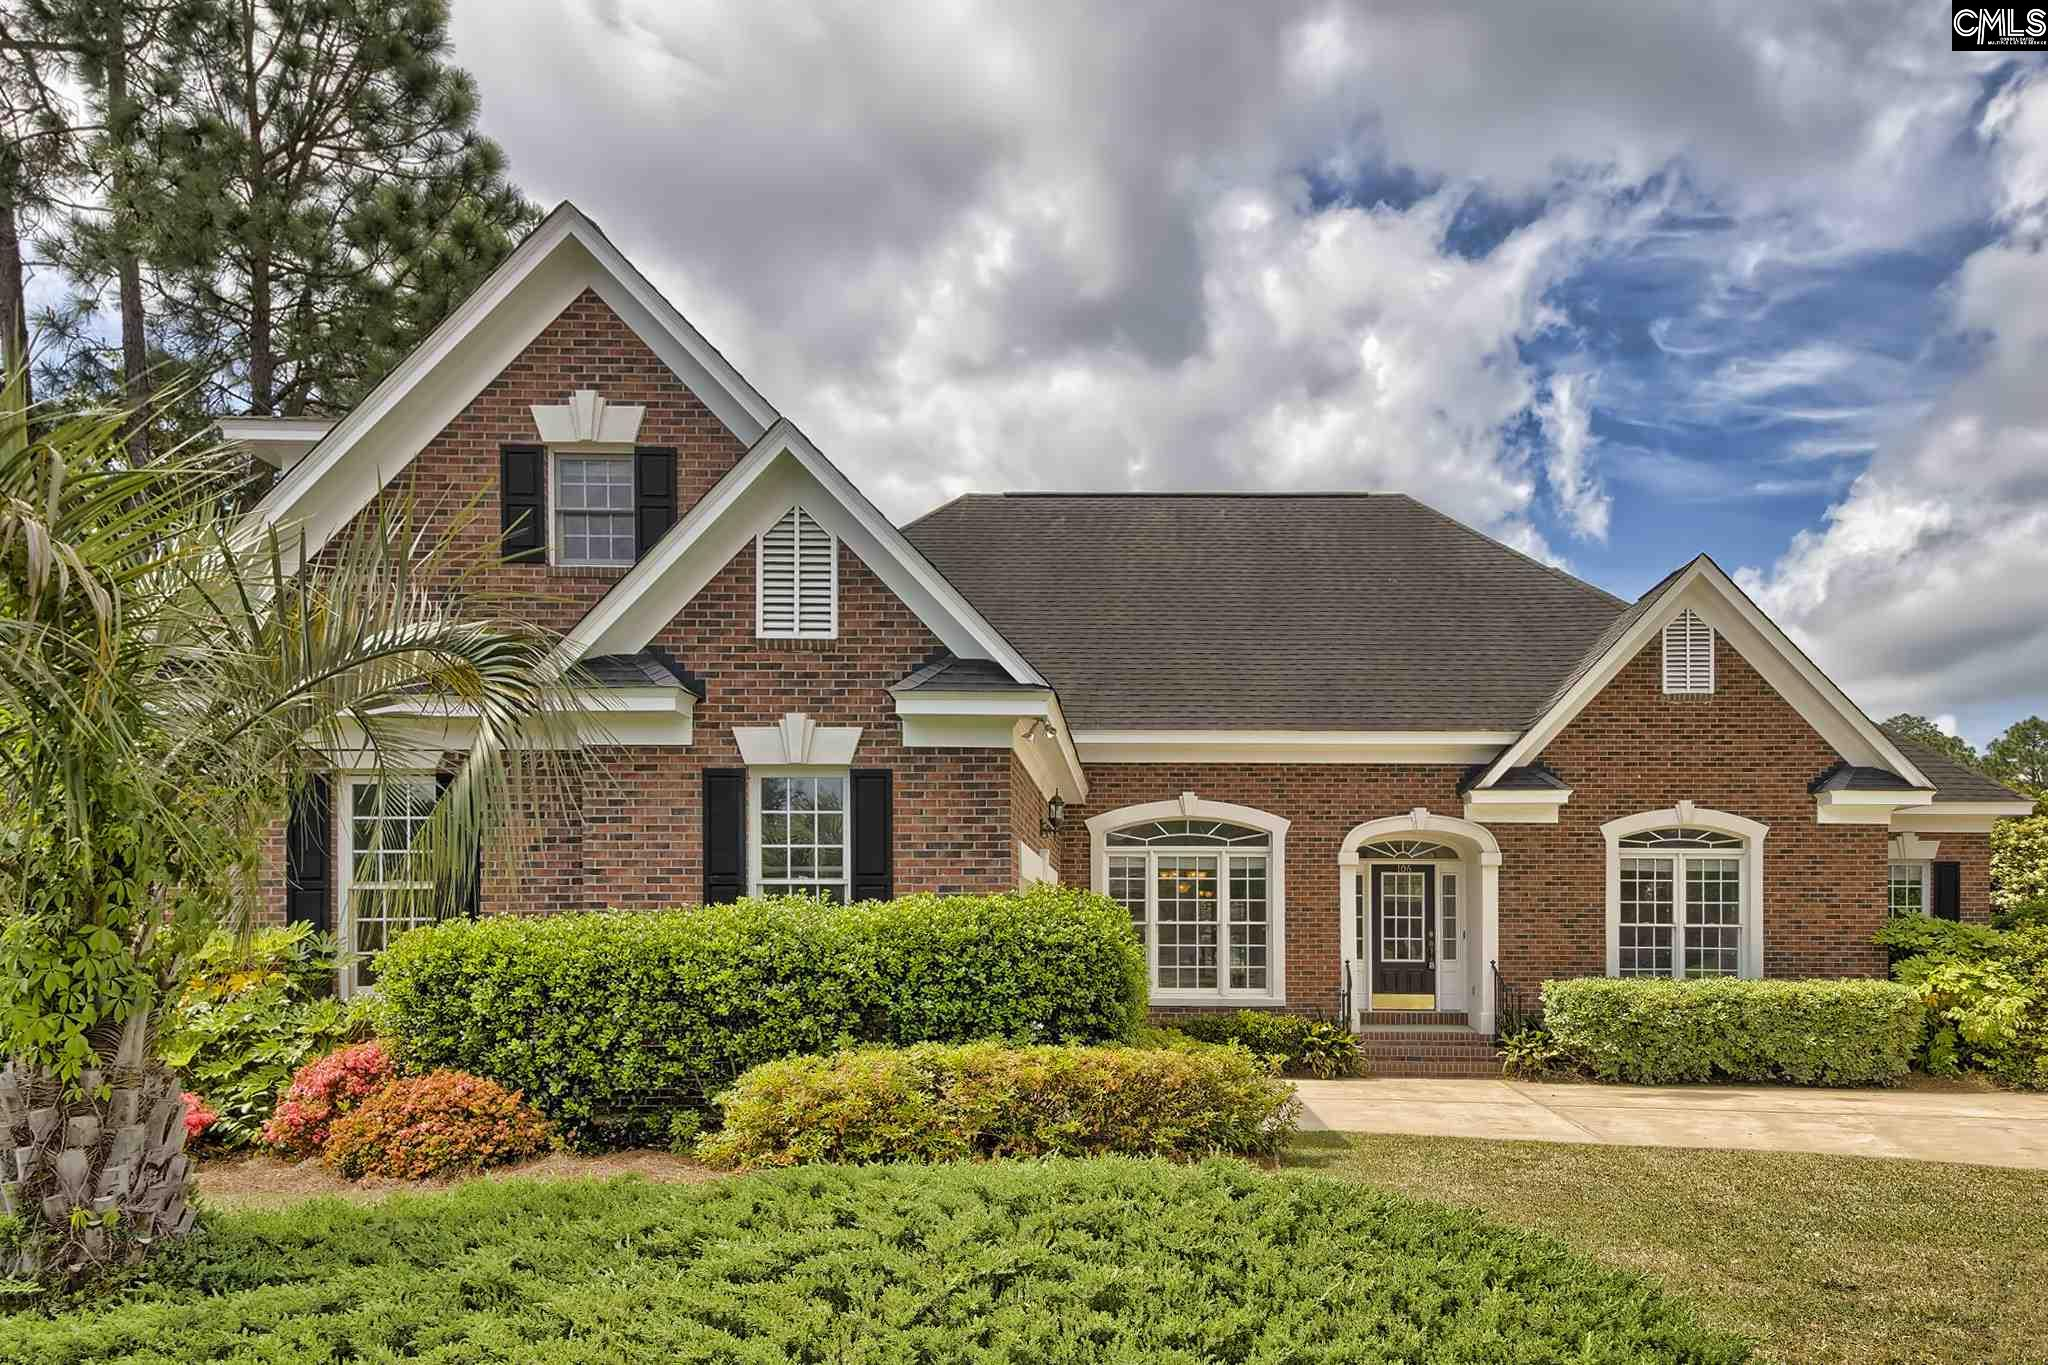 106 Windermere Village Blythewood, SC 29016-8281